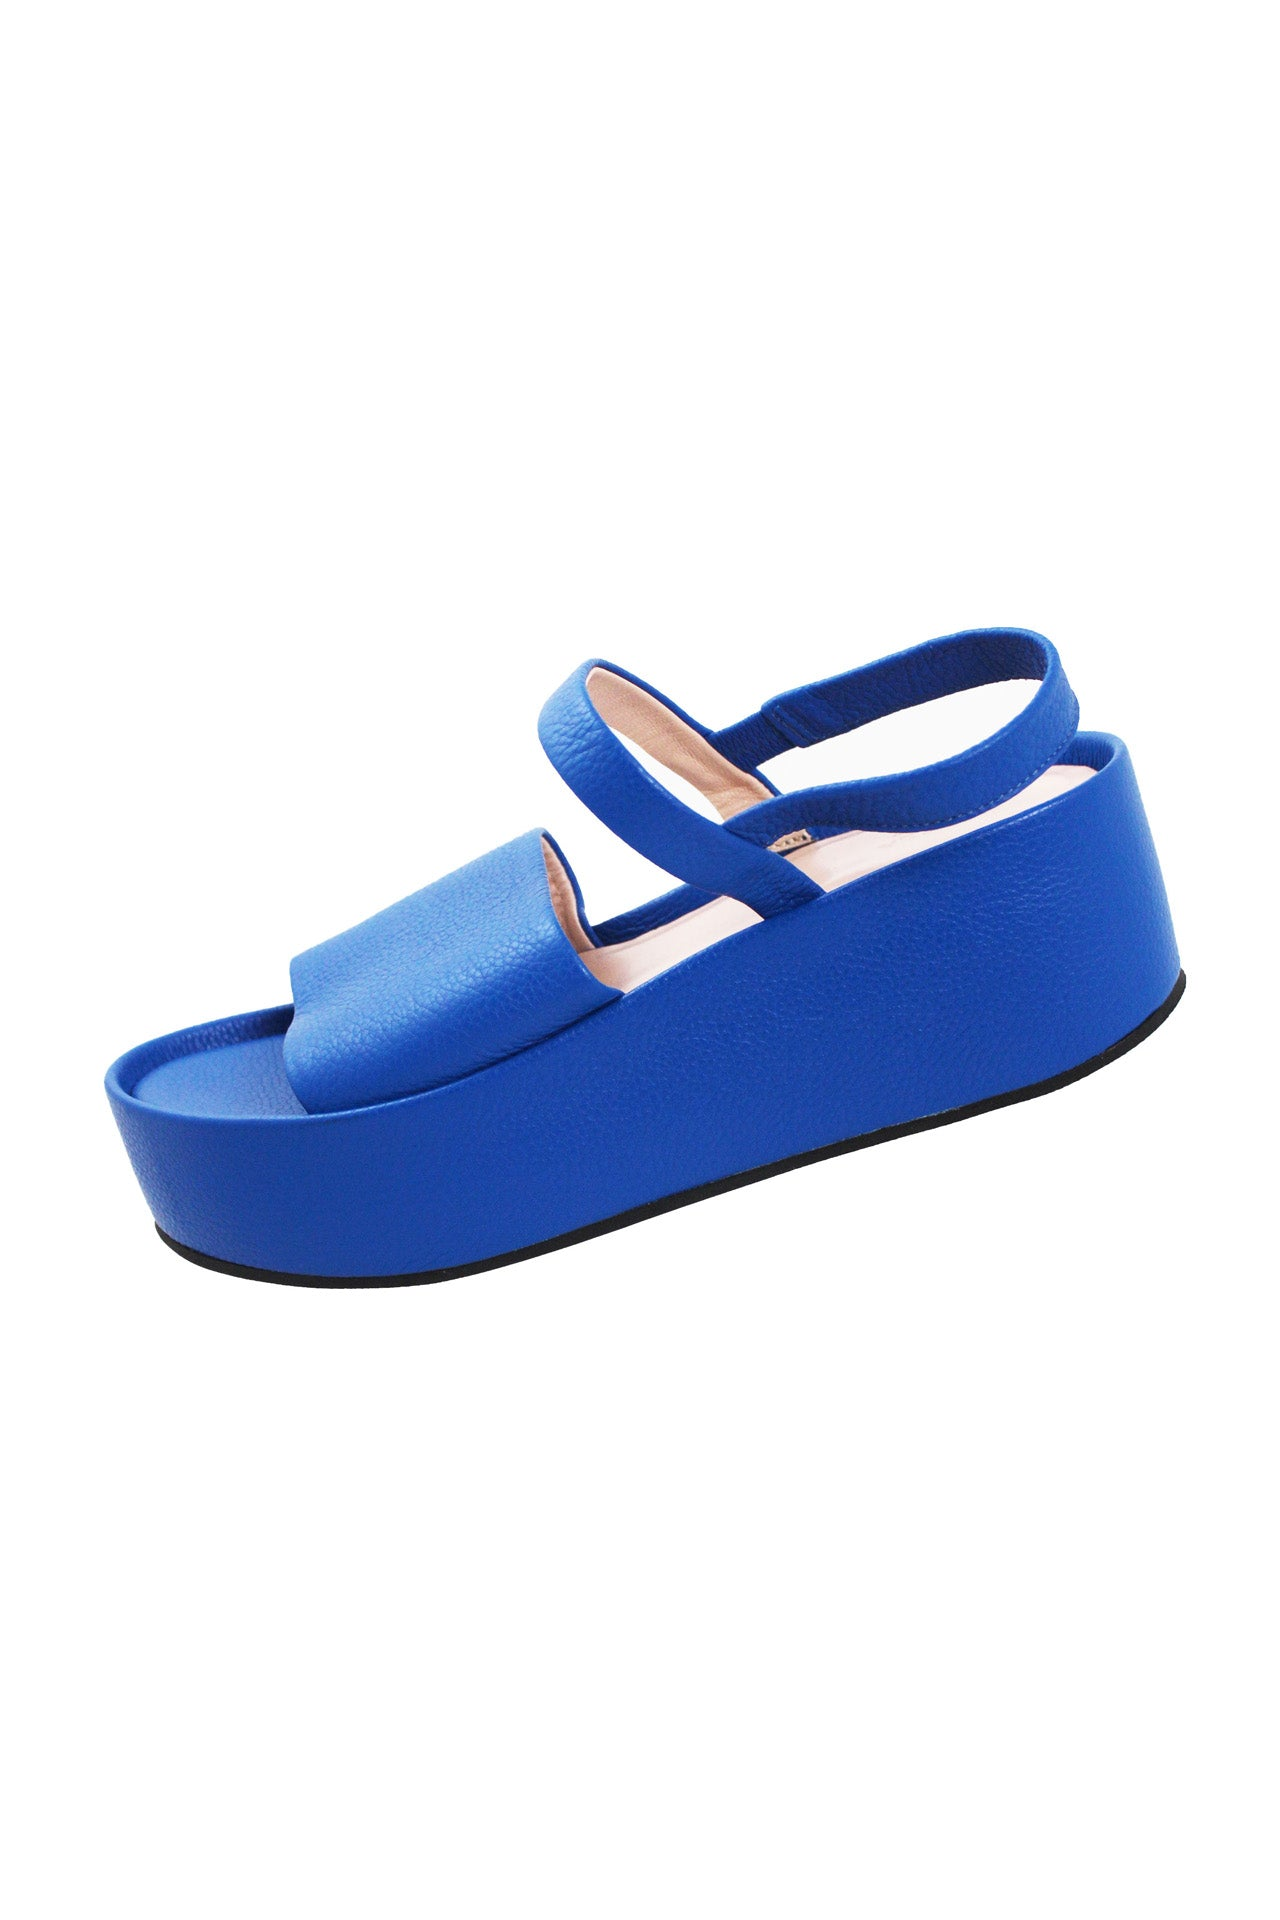 furla cobalt leather slingback platform shoes. features cobalt leather exterior, elastic slingback opening and leather soles.